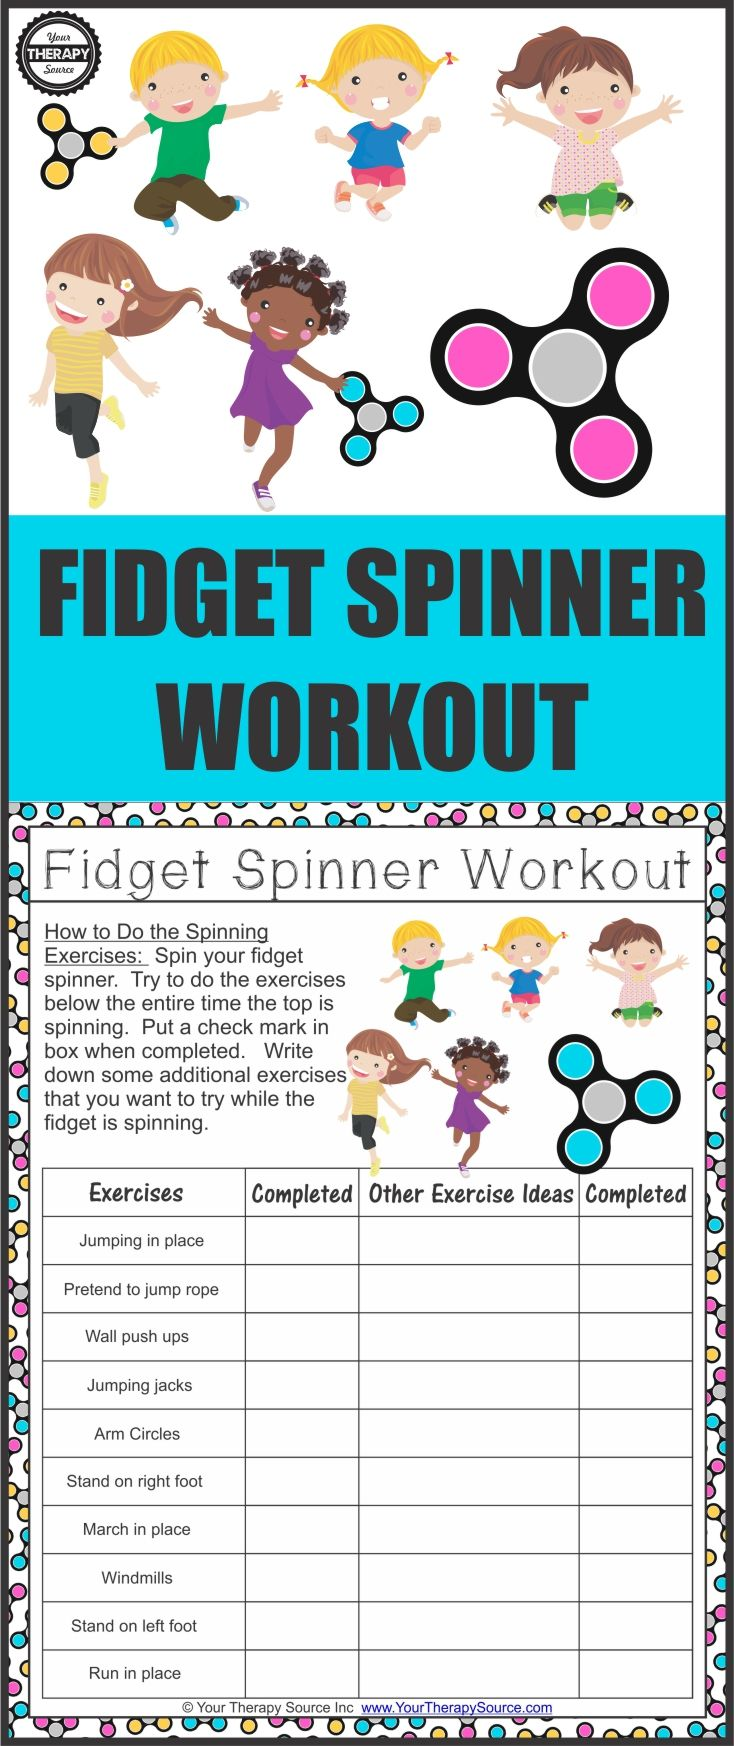 Fidget Spinner Workout - Exercise While It Spins | Active play ...